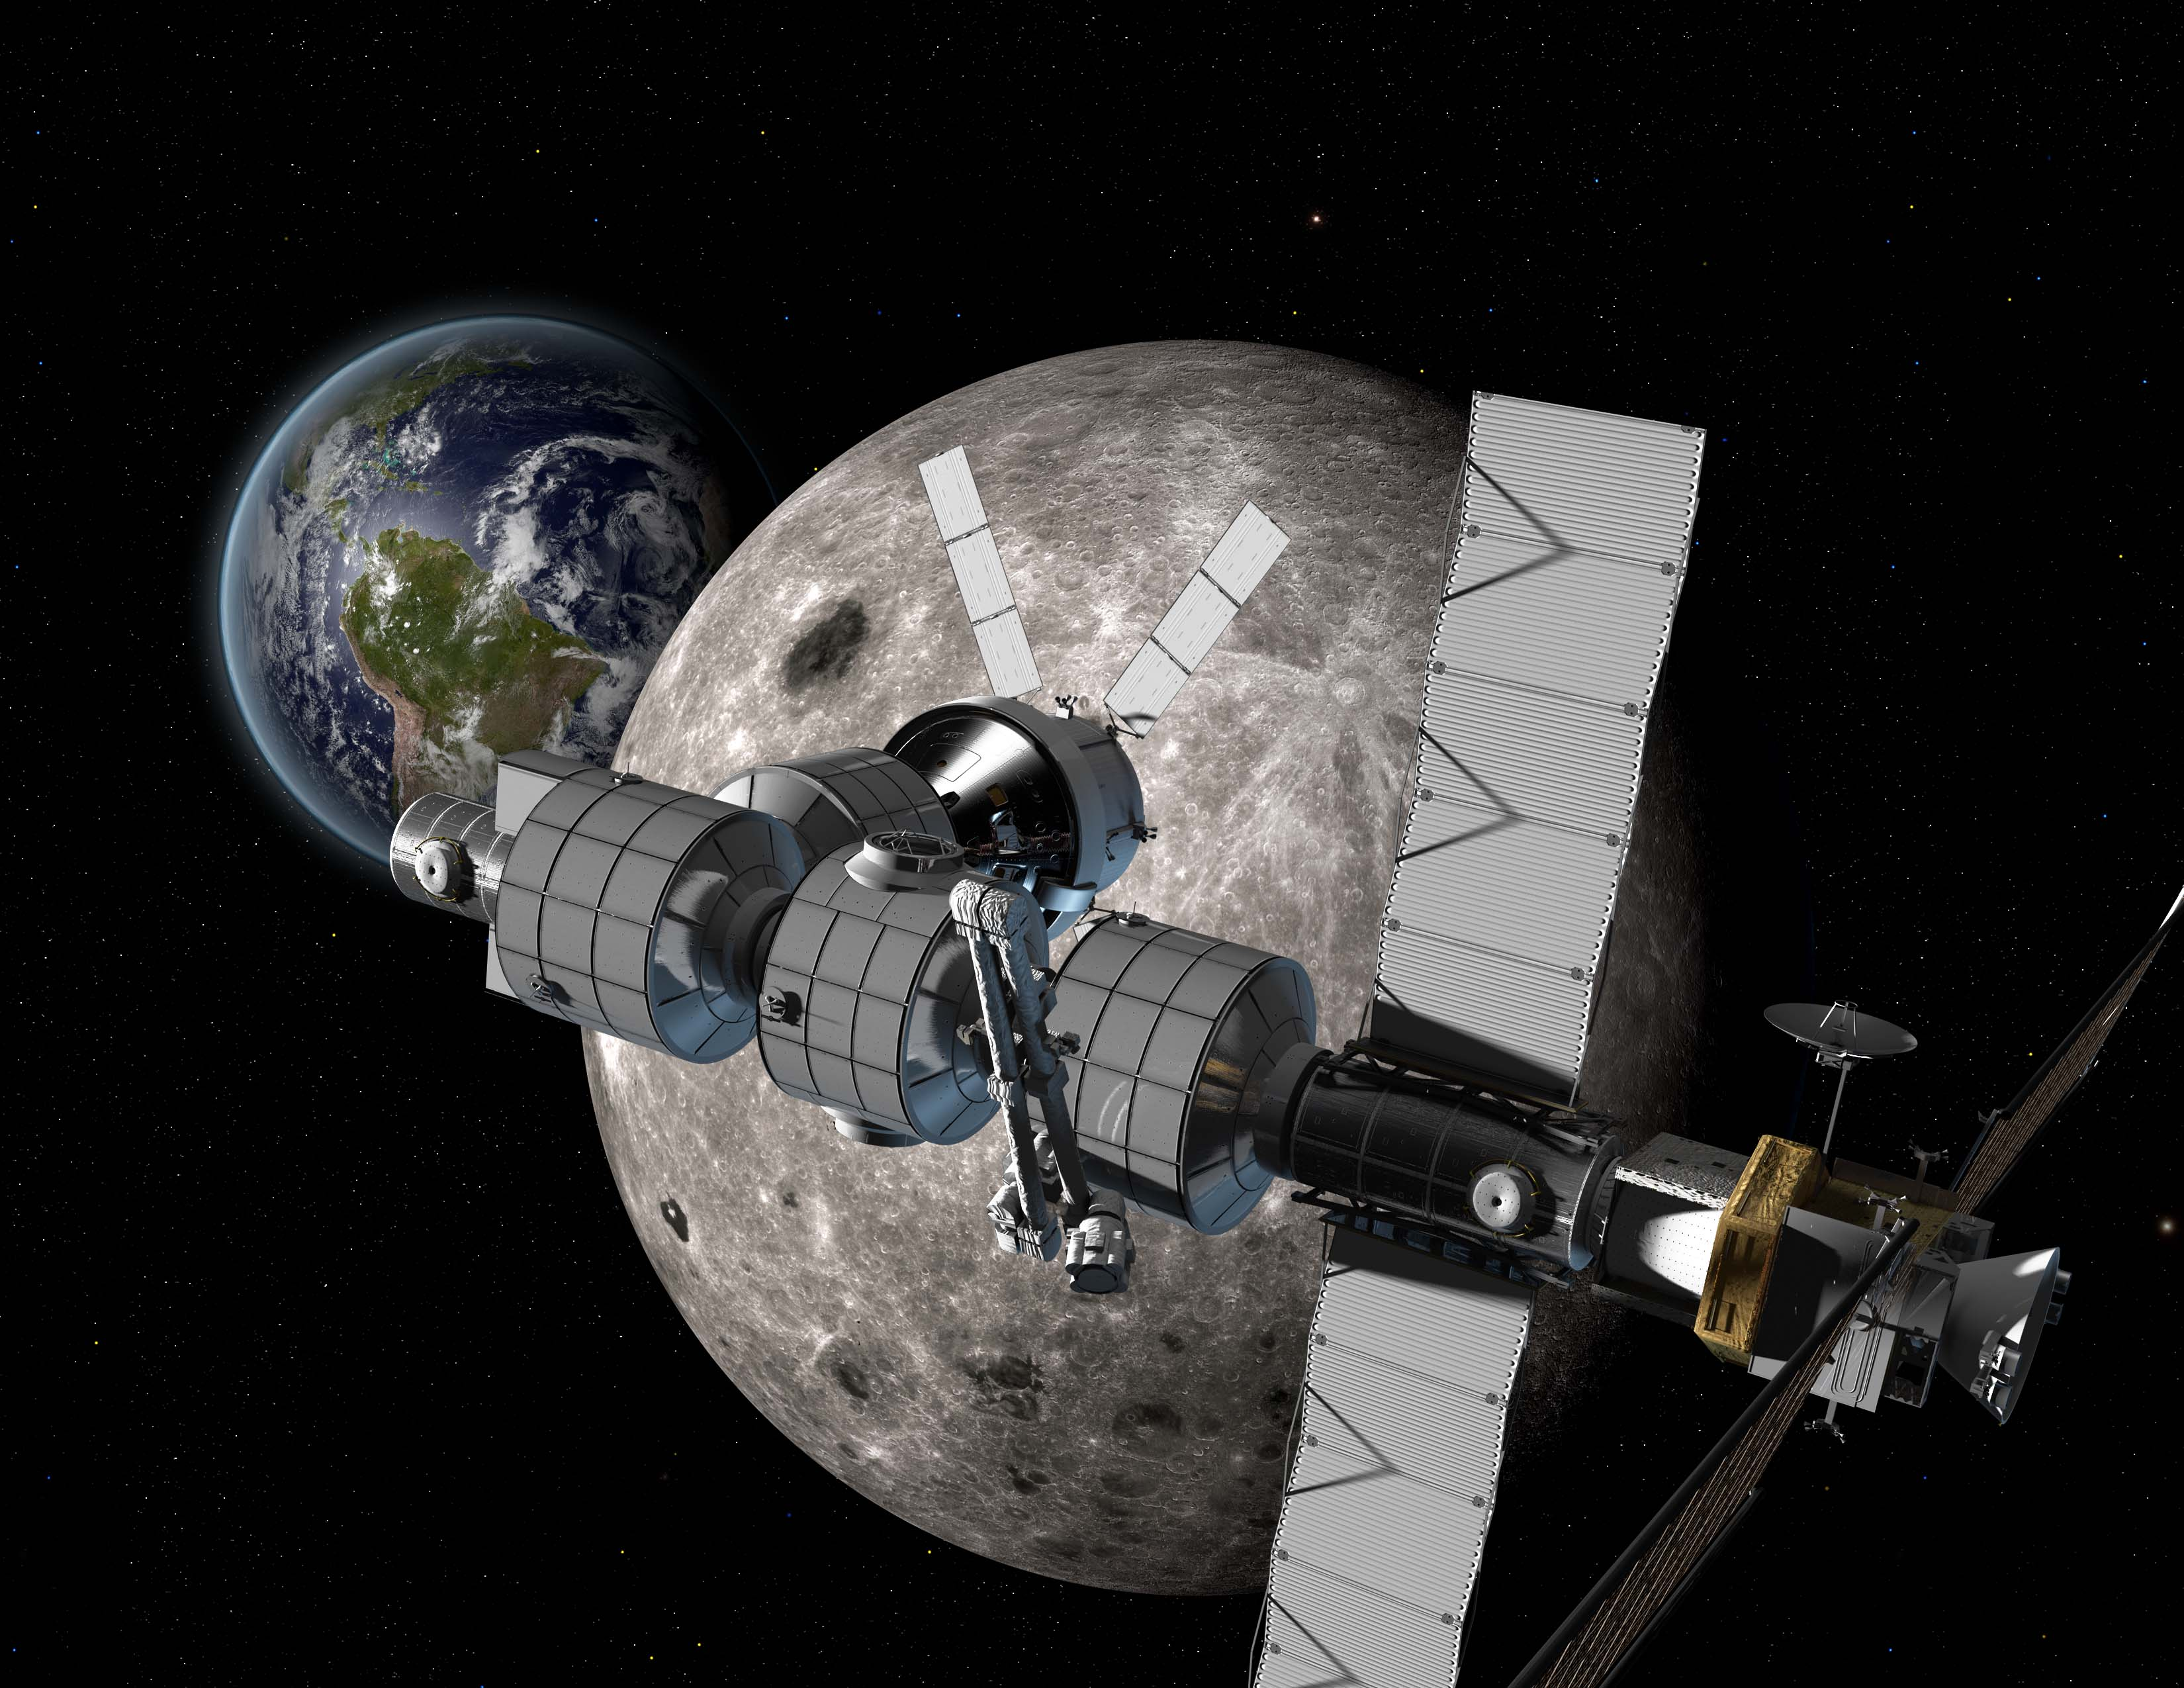 Boeing Eyes Moon-Orbiting Space Station as Waypoint to Mars